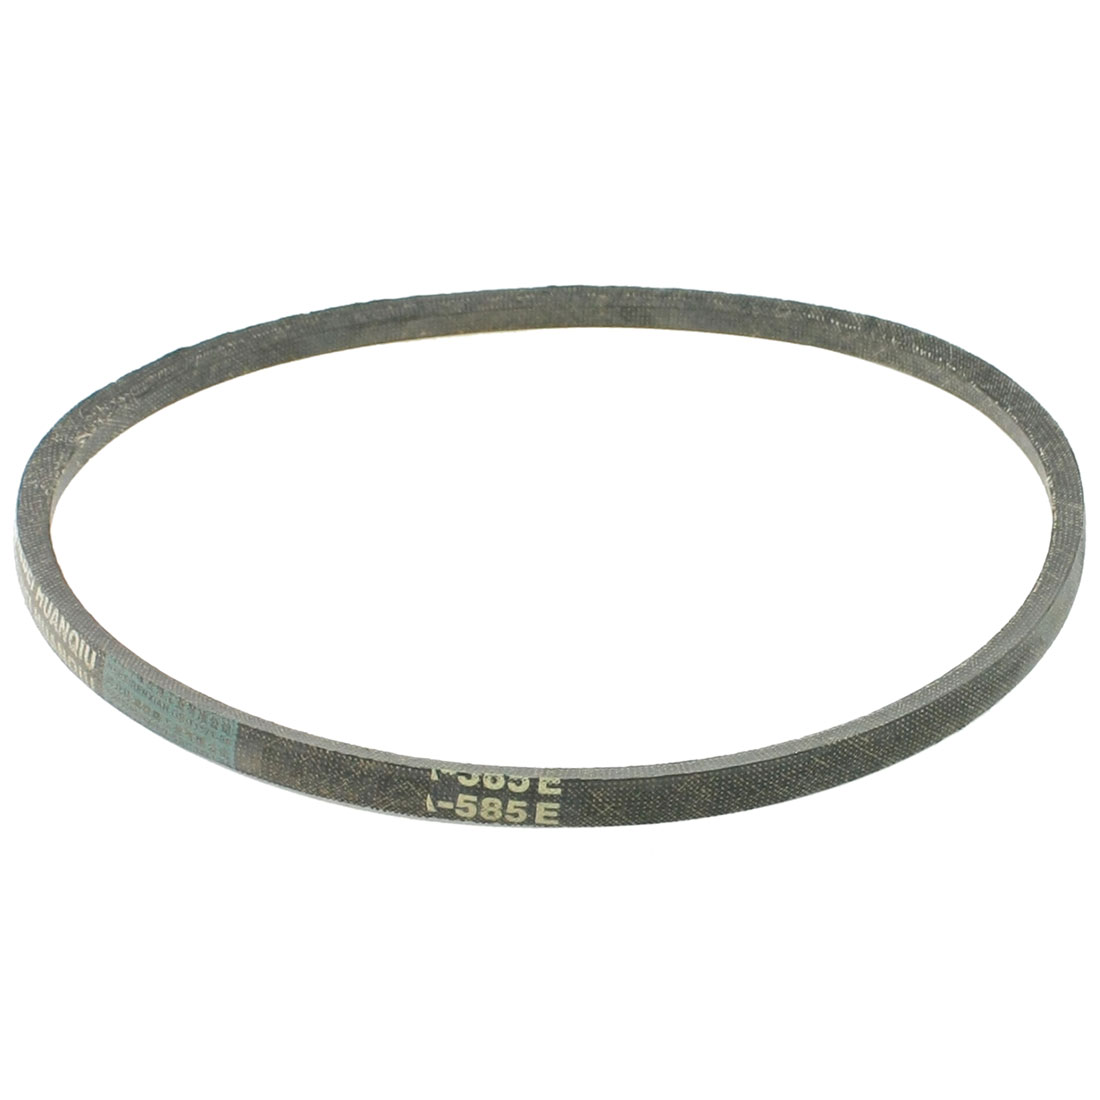 "Washing Machine Motor V Belt 25/64"" Outer Width 58.5cm 23"" Inner Girth"